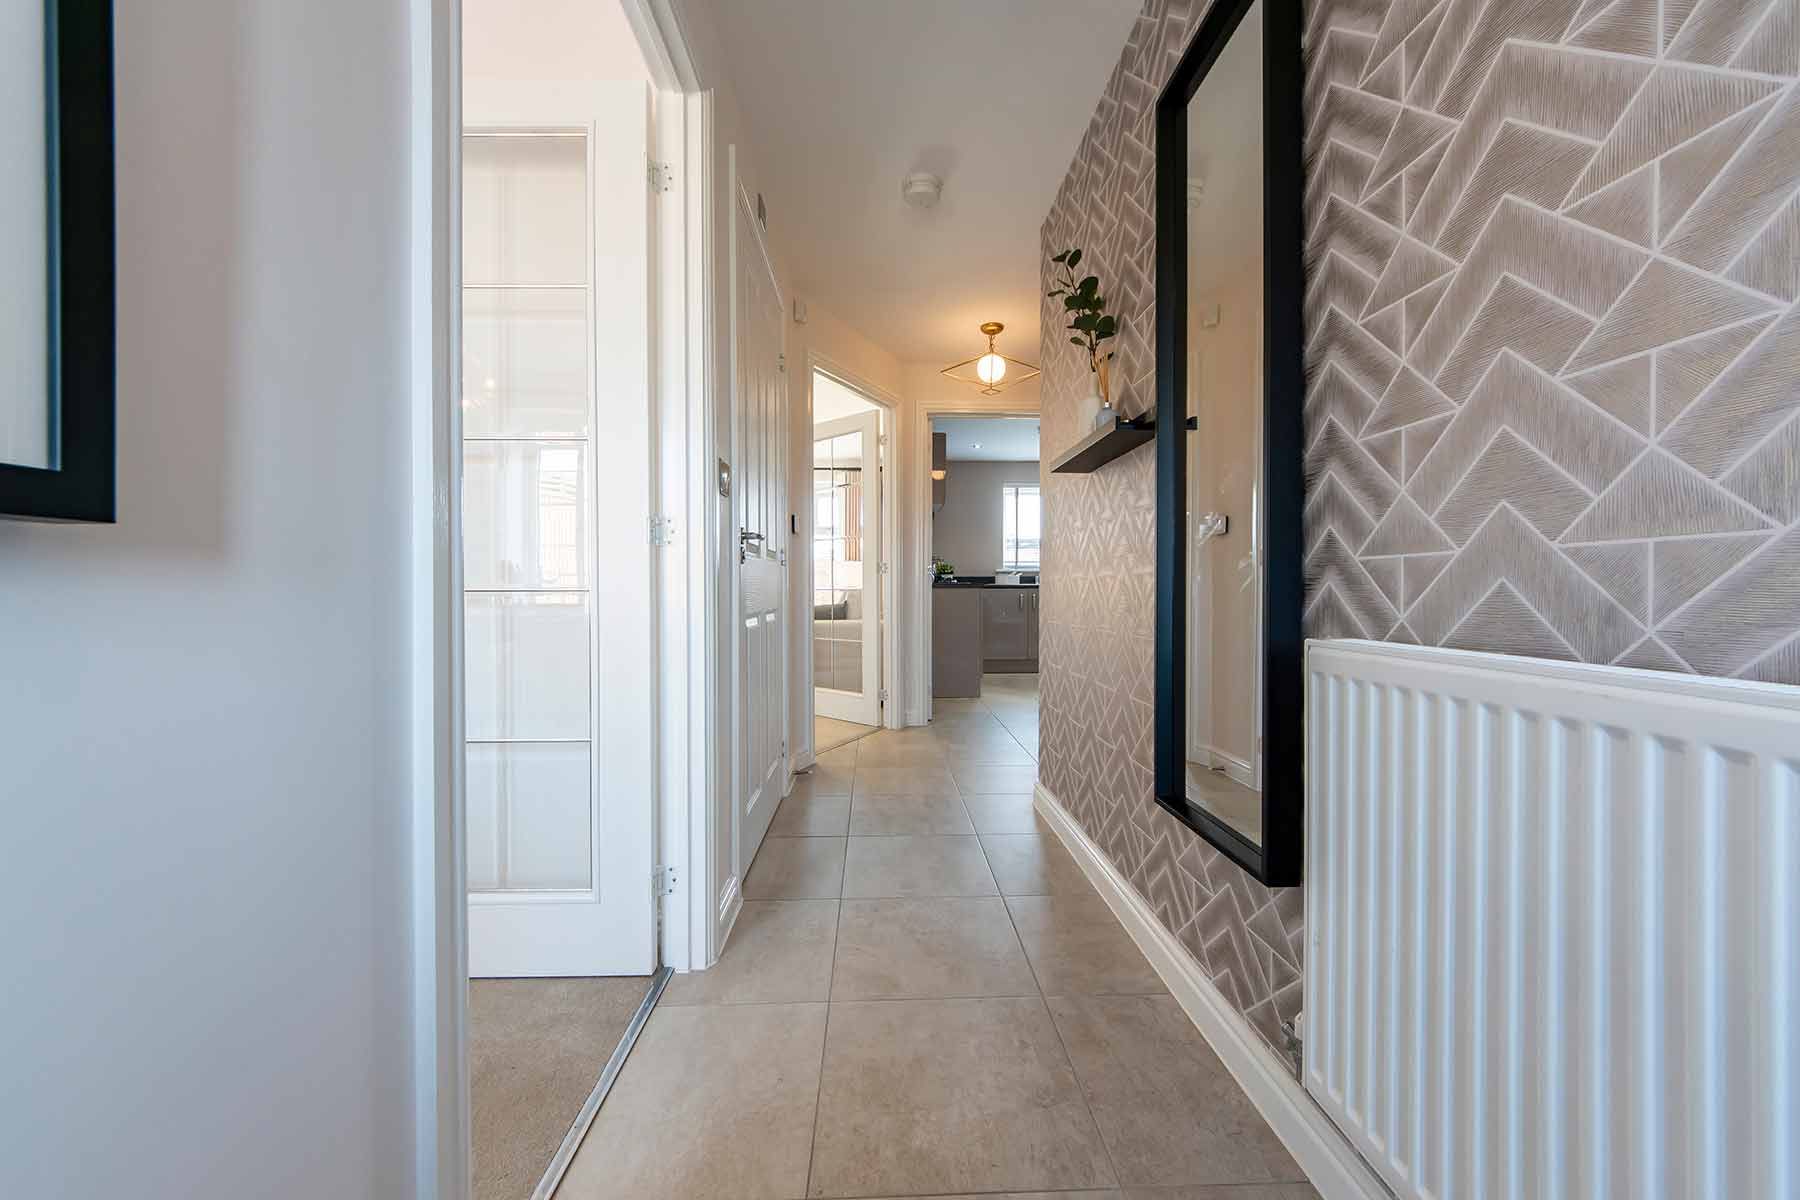 Hallway Aldenham-3bedroom-showhome_03